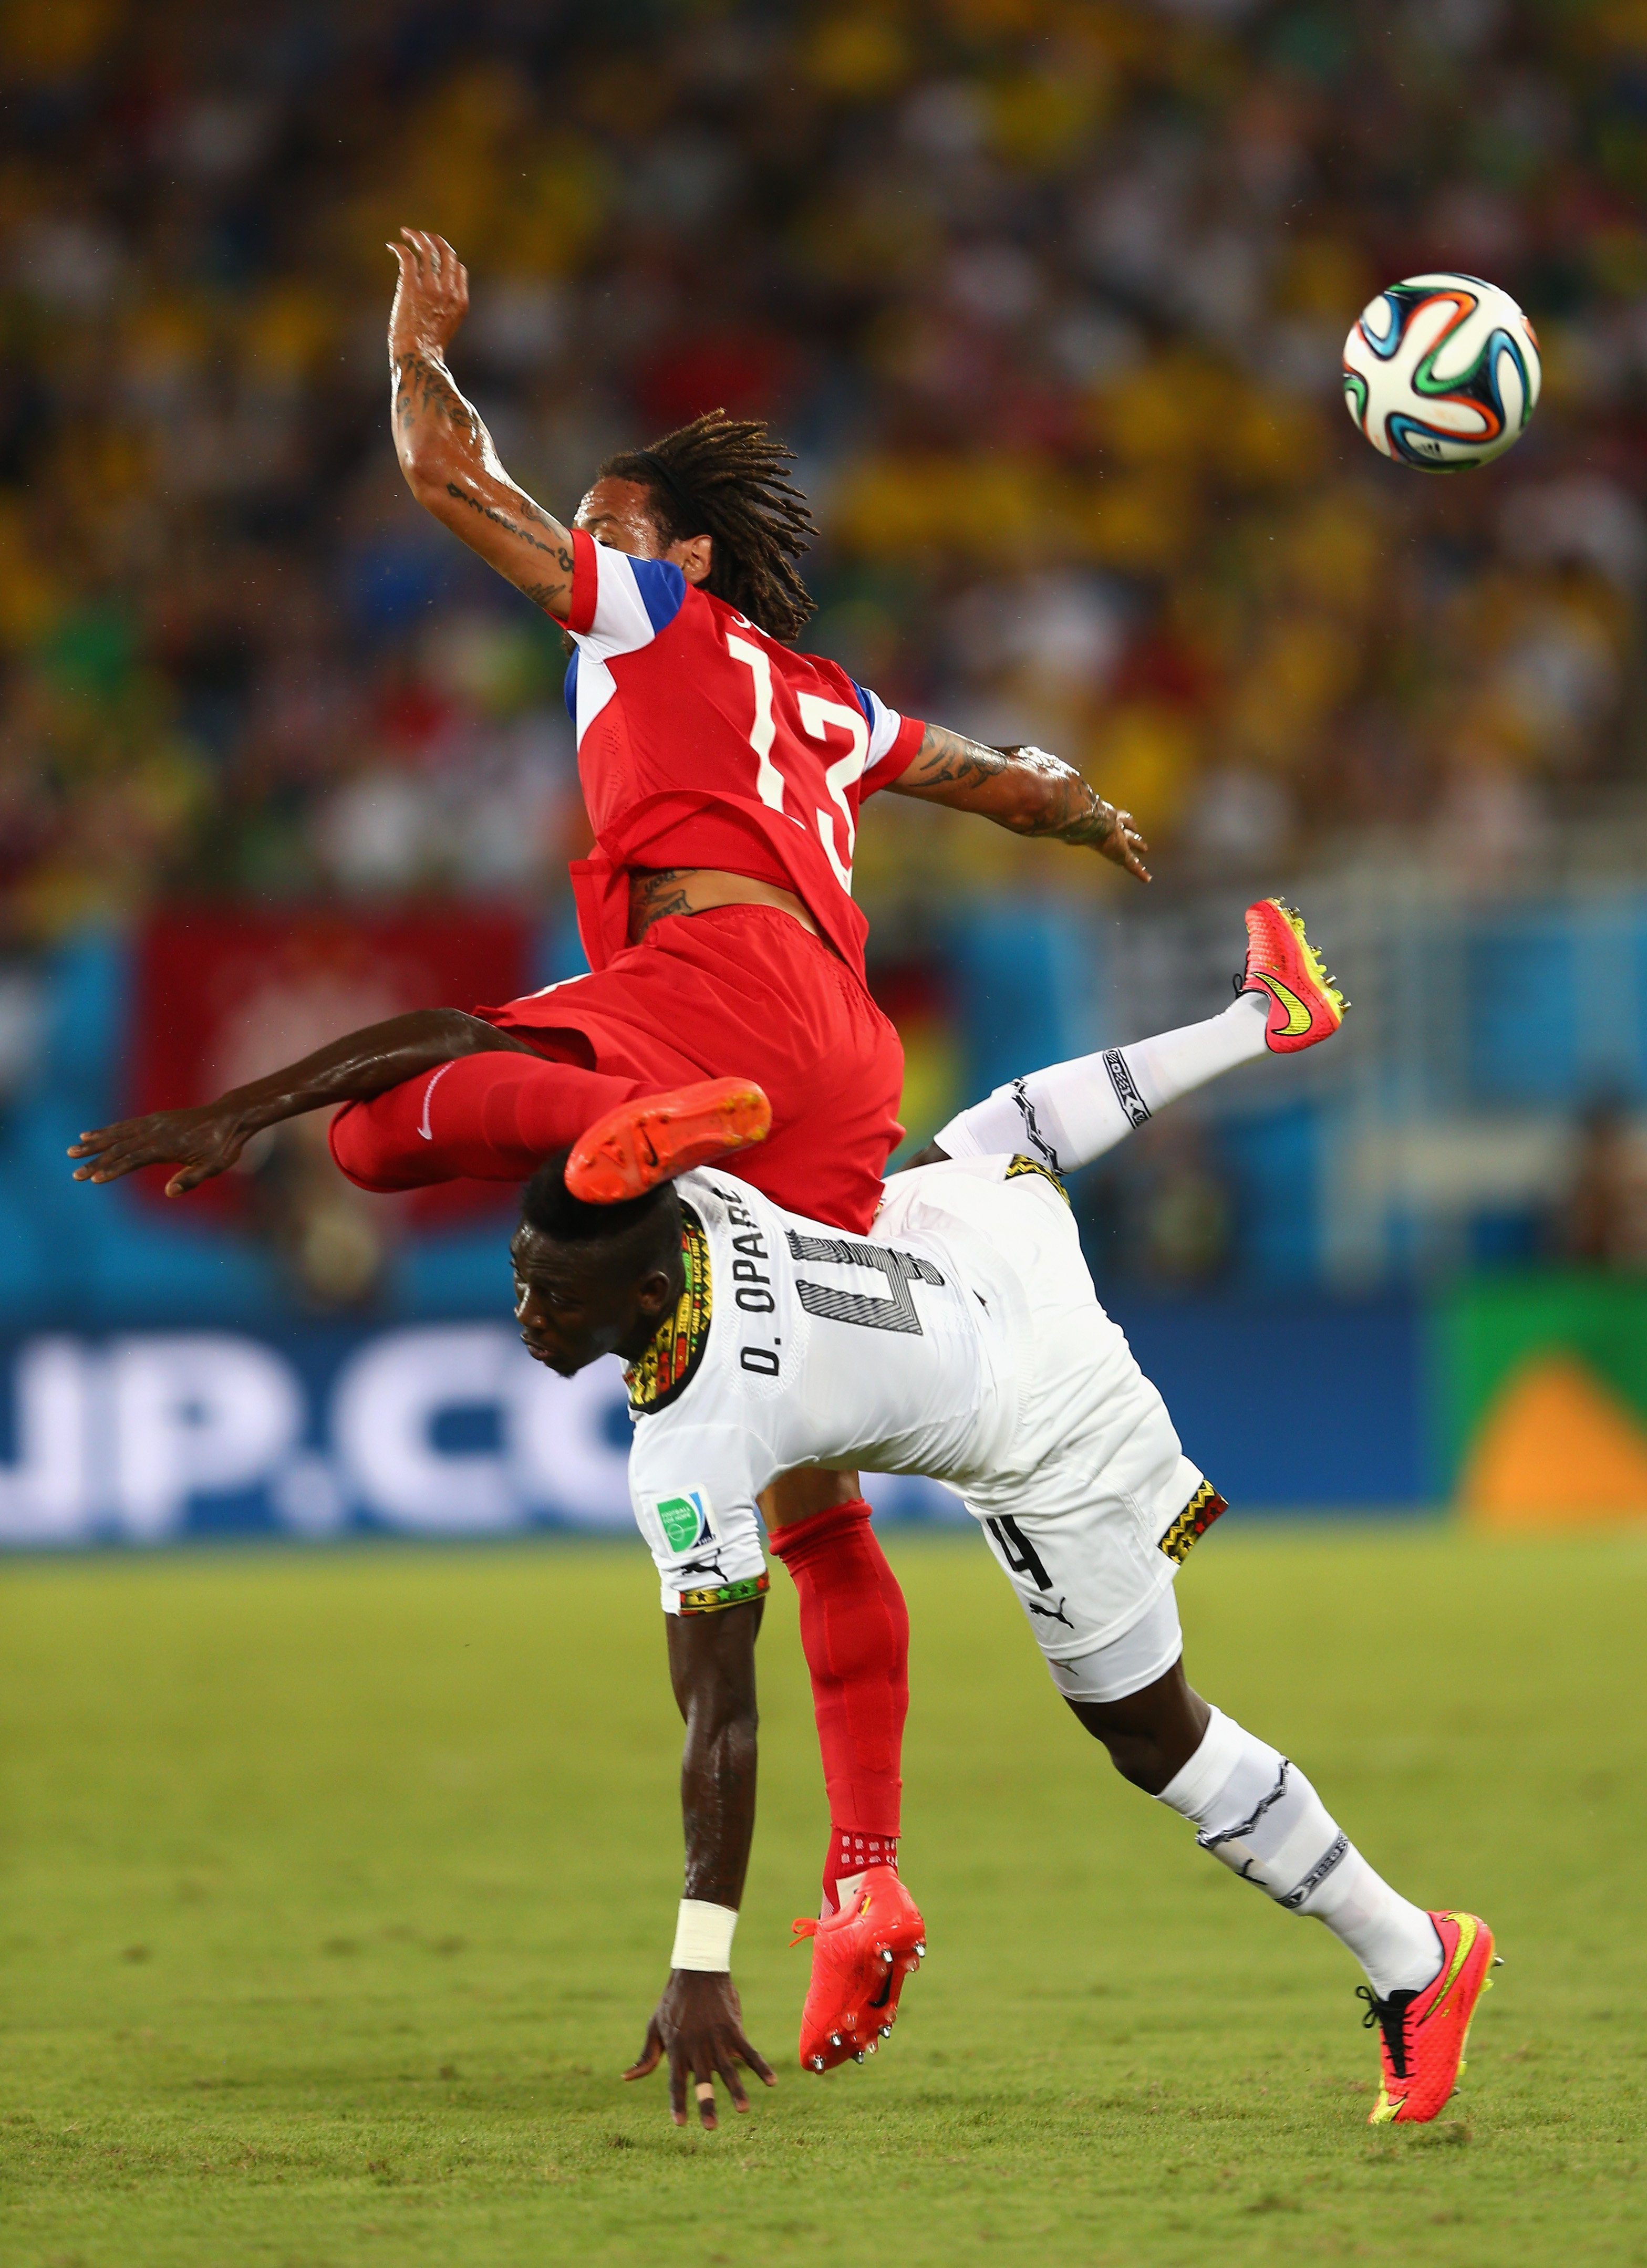 Daniel Opare of Ghana and Jermaine Jones of the United States collide during the 2014 FIFA World Cup Brazil Group G match between Ghana and the United States at Estadio das Dunas on June 16, 2014 in Natal, Brazil.